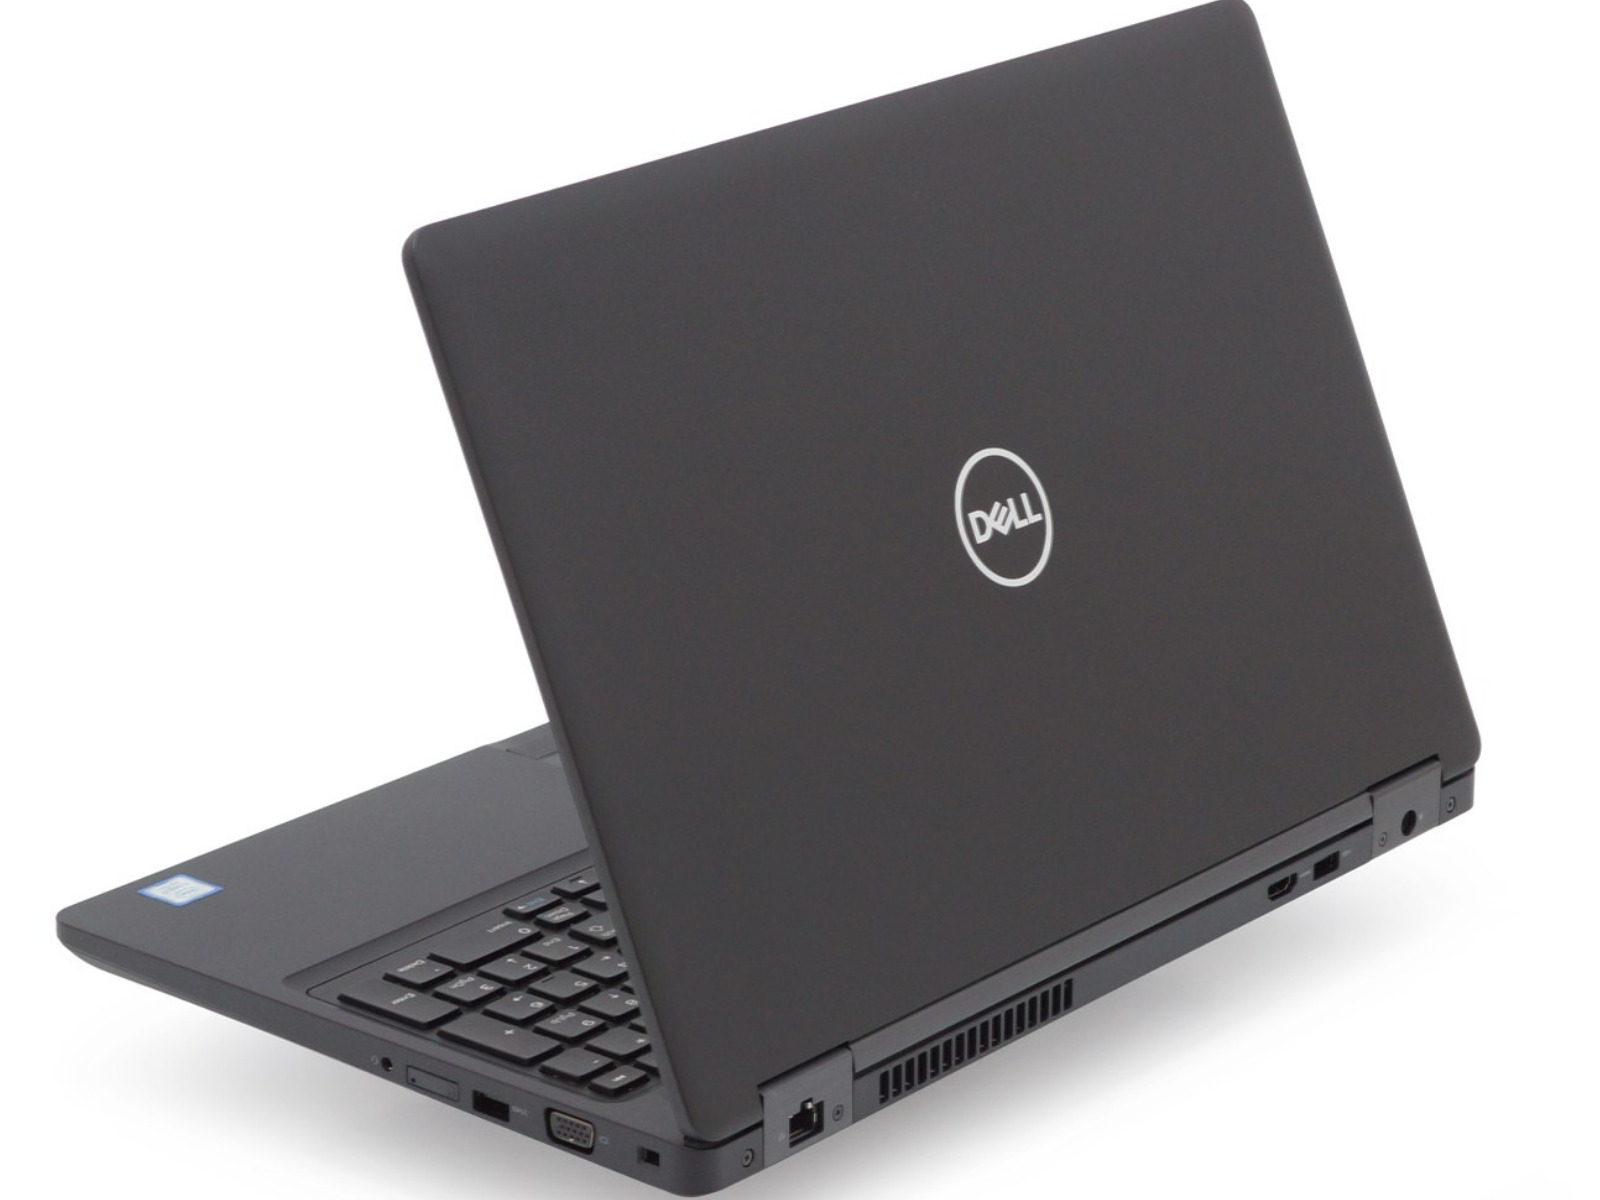 Eliminate tearing on Dell Latitude 5590 with Fedora 29 XFCE